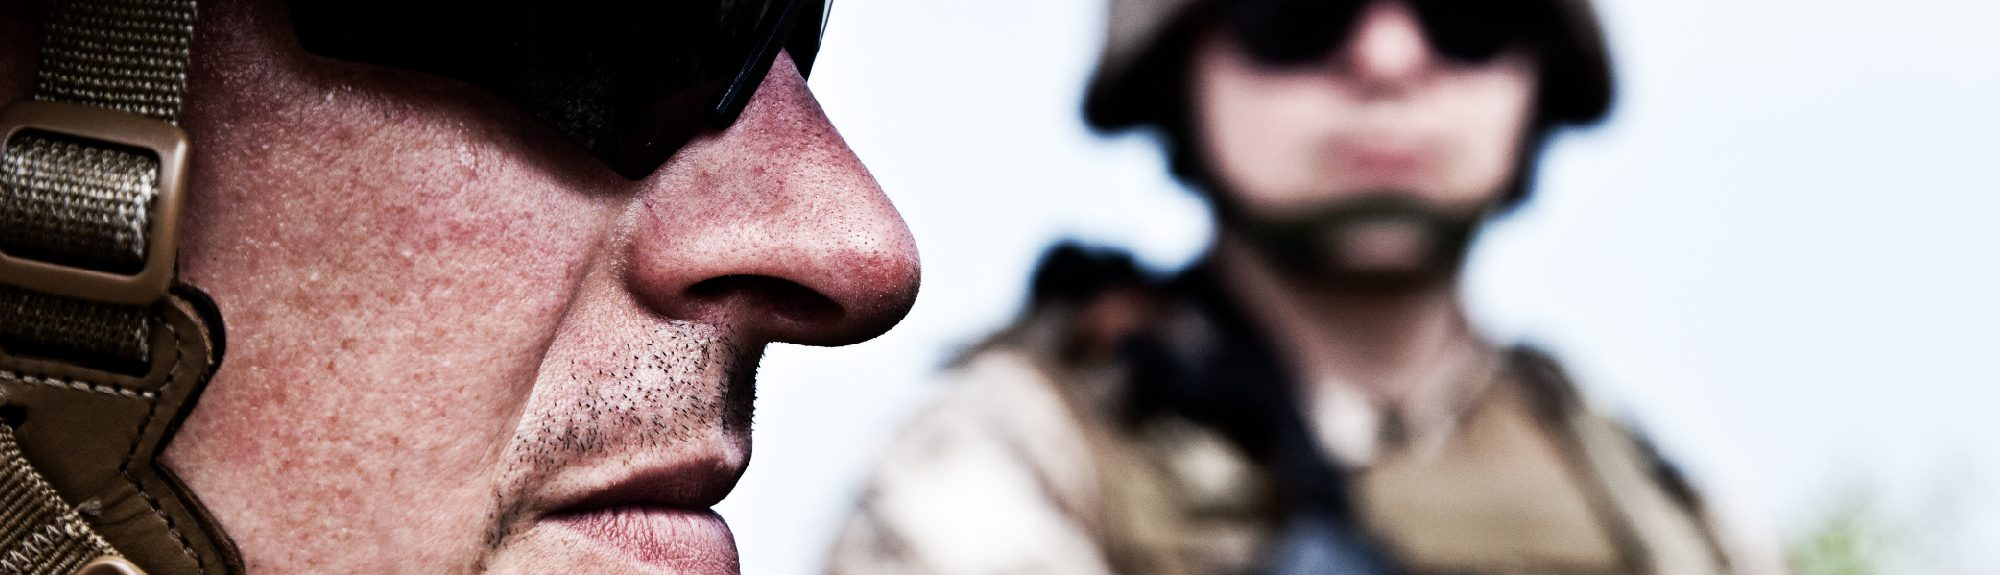 Close-up with two male military soliders